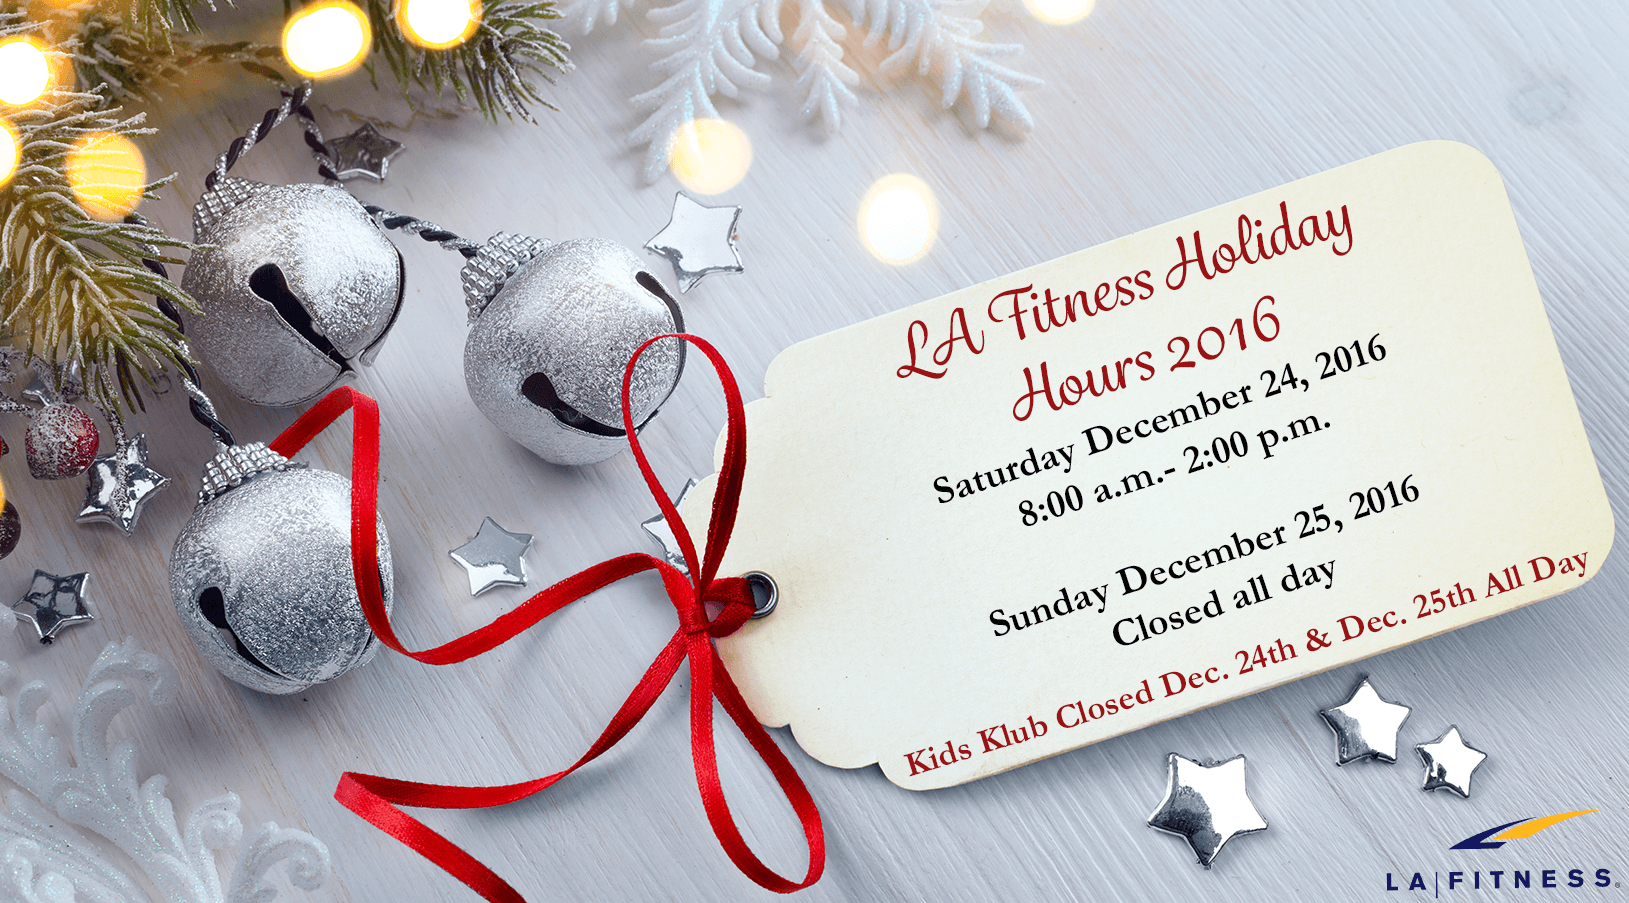 LA fitness christmas hours Archives - The Official Blog of LA Fitness